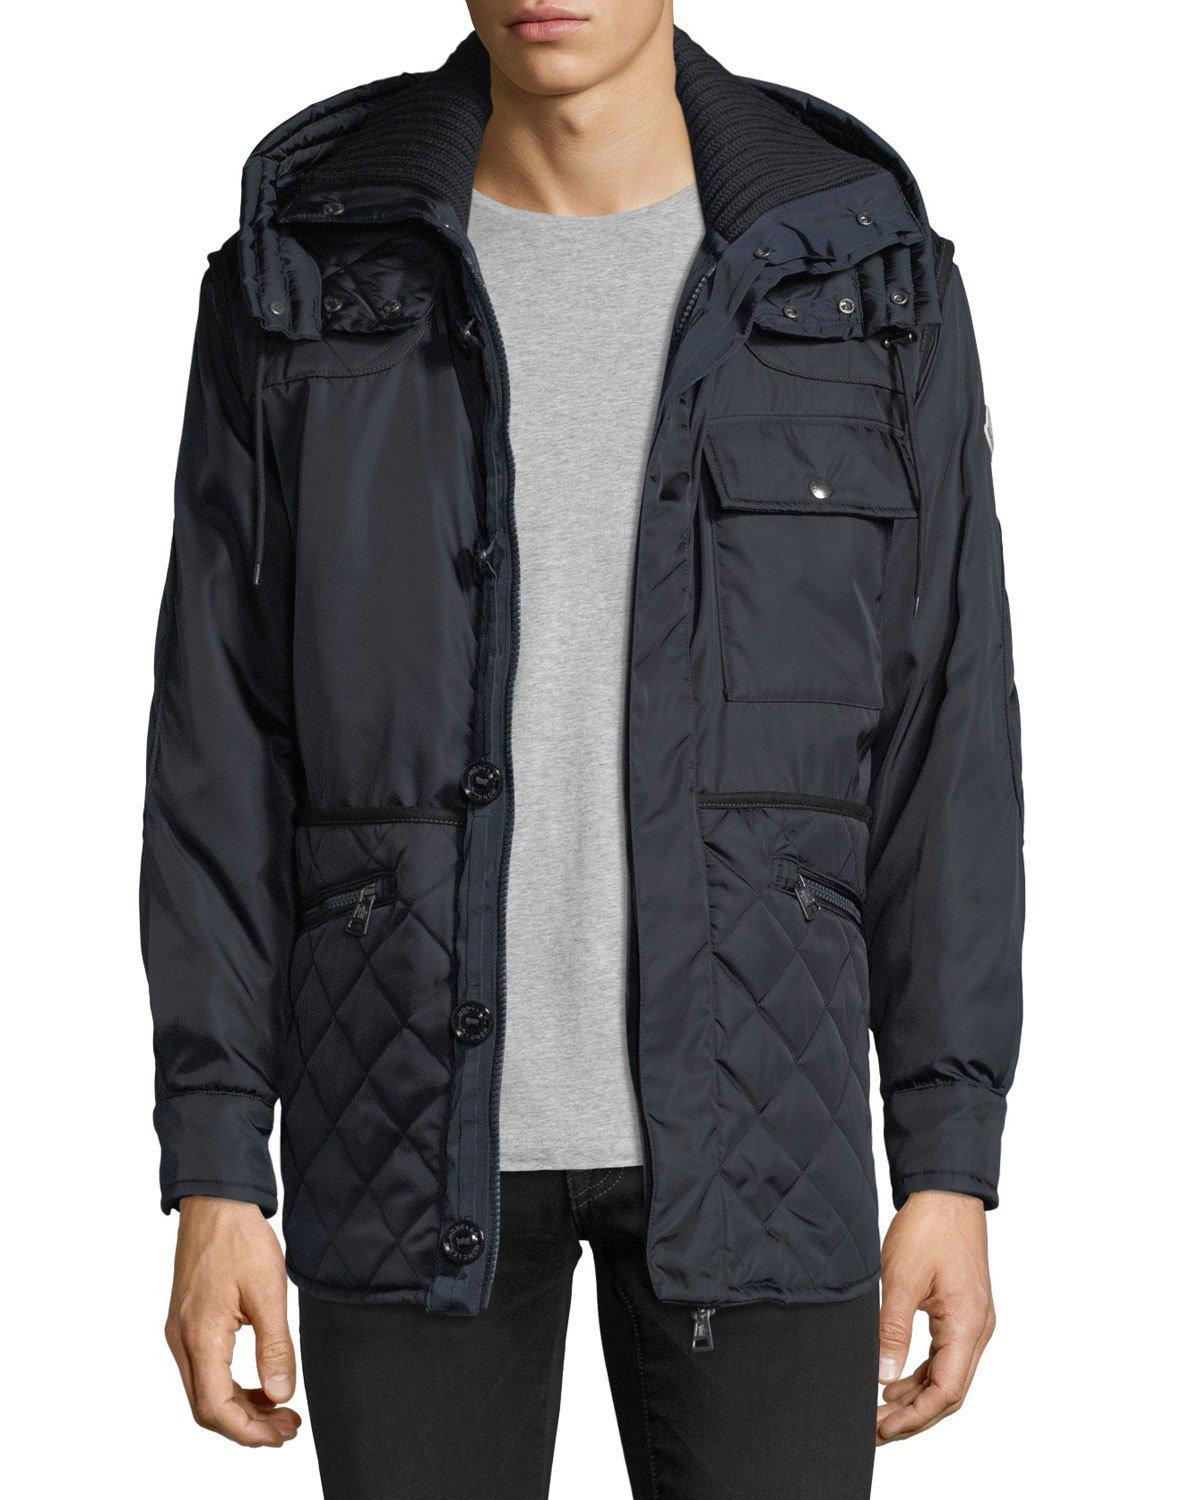 a05b9c052d9 moncler in neiman marcus